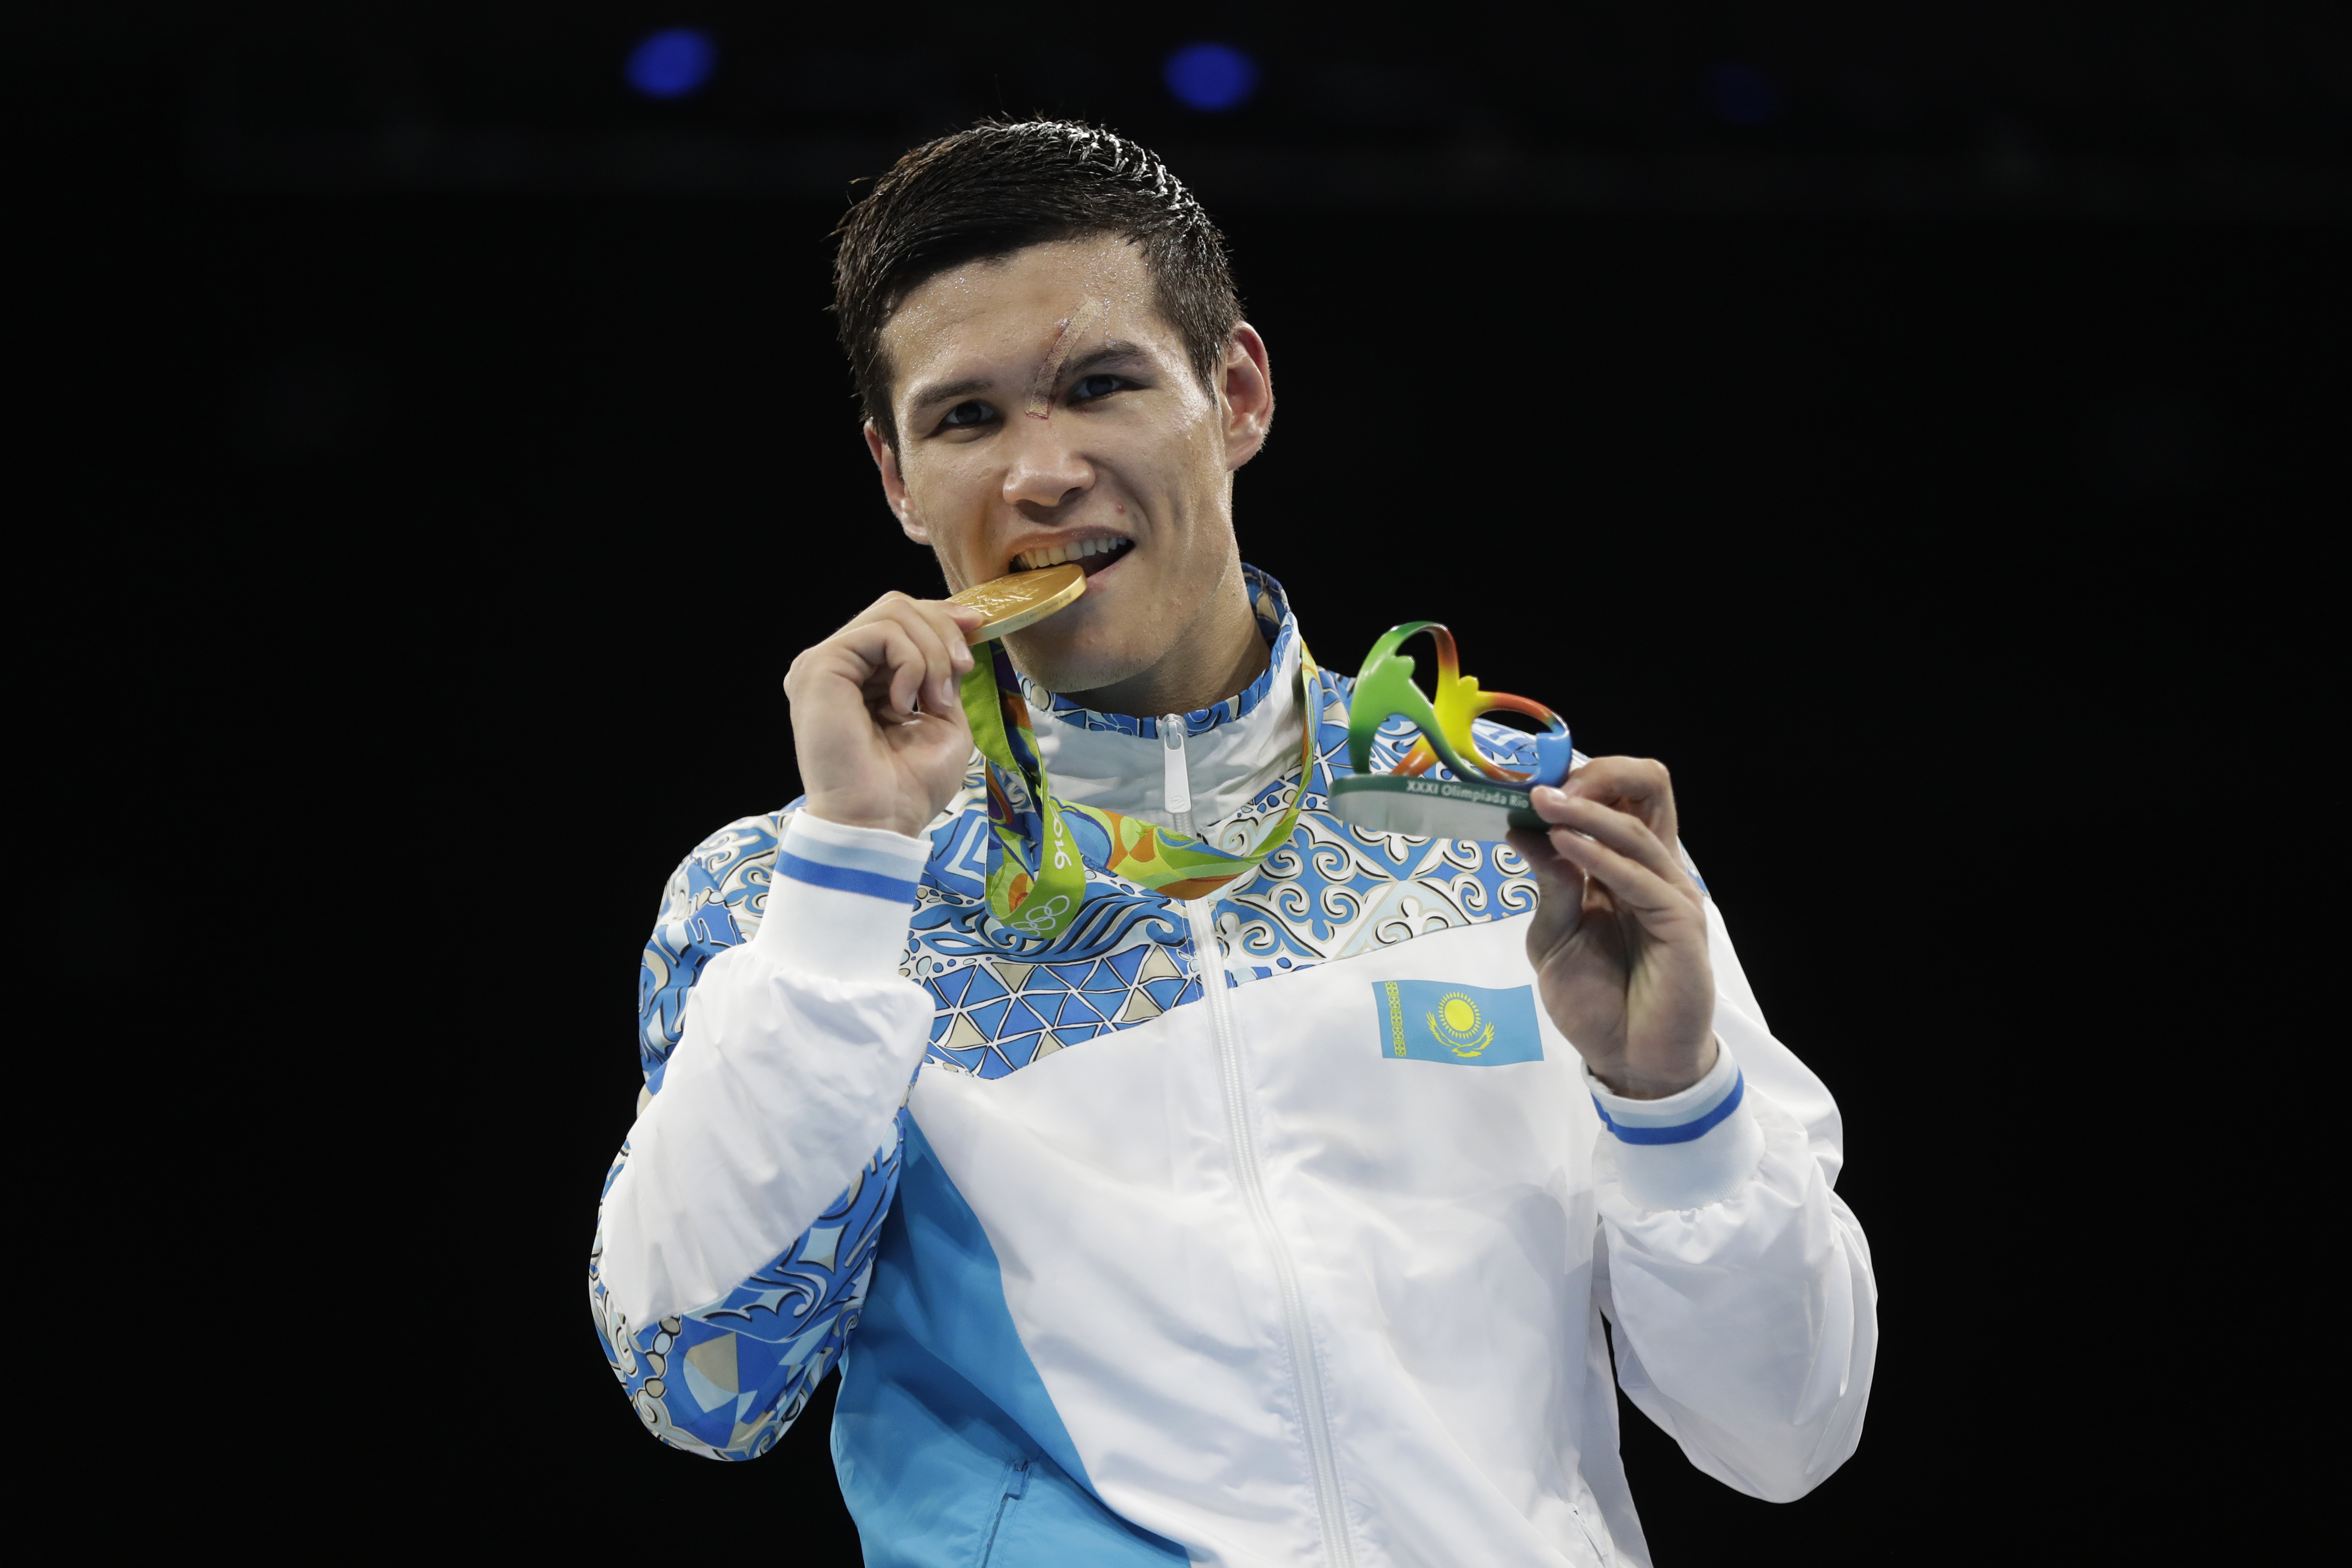 Kazakhstan's Daniyar Yeleussinov displays his gold medal for the men's welterweight 69-kg final boxing at the 2016 Summer Olympics in Rio de Janeiro, Brazil, Wednesday, Aug. 17, 2016. (AP Photo/Frank Franklin II)